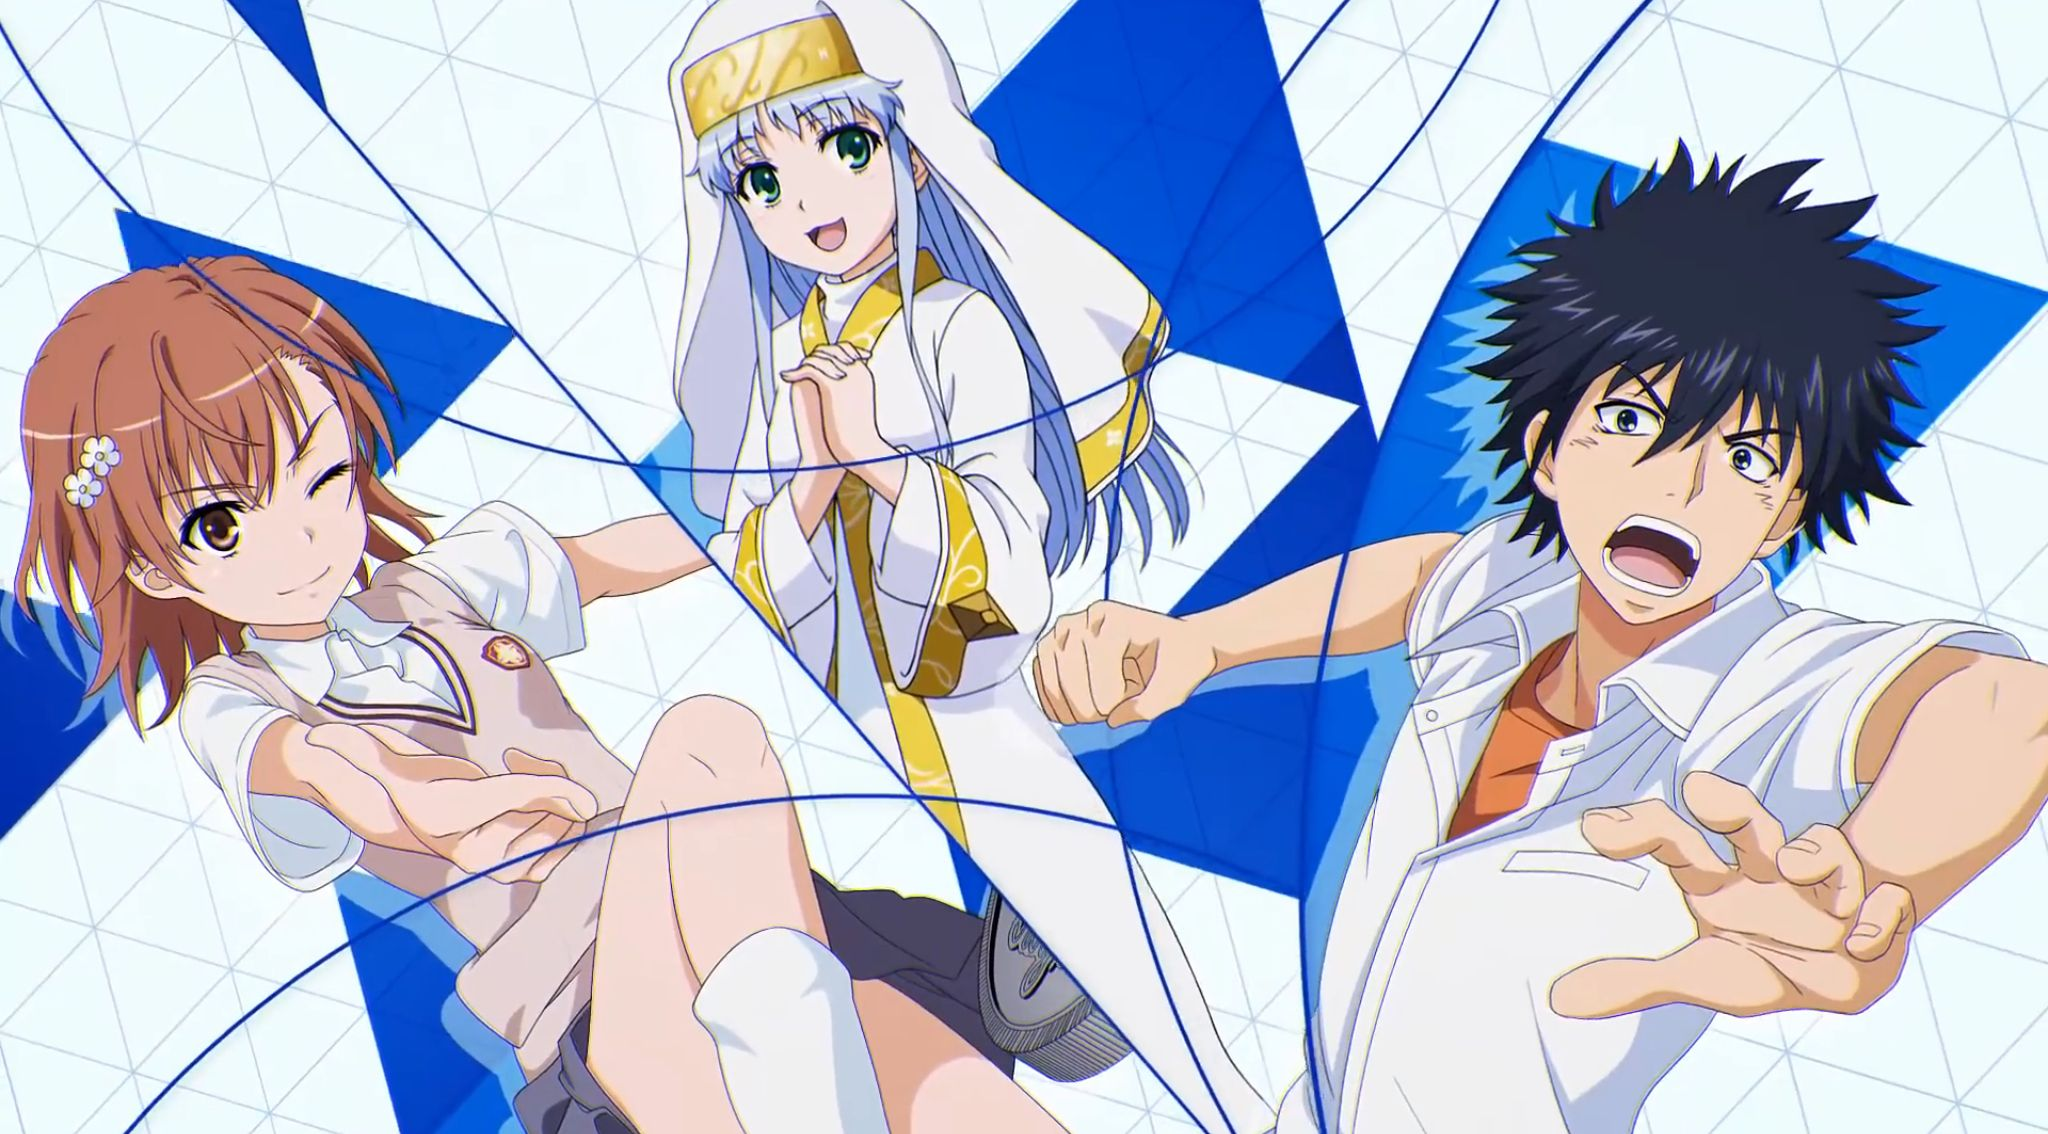 Kamijou Index and Misaka from A Certain Magical Index anime